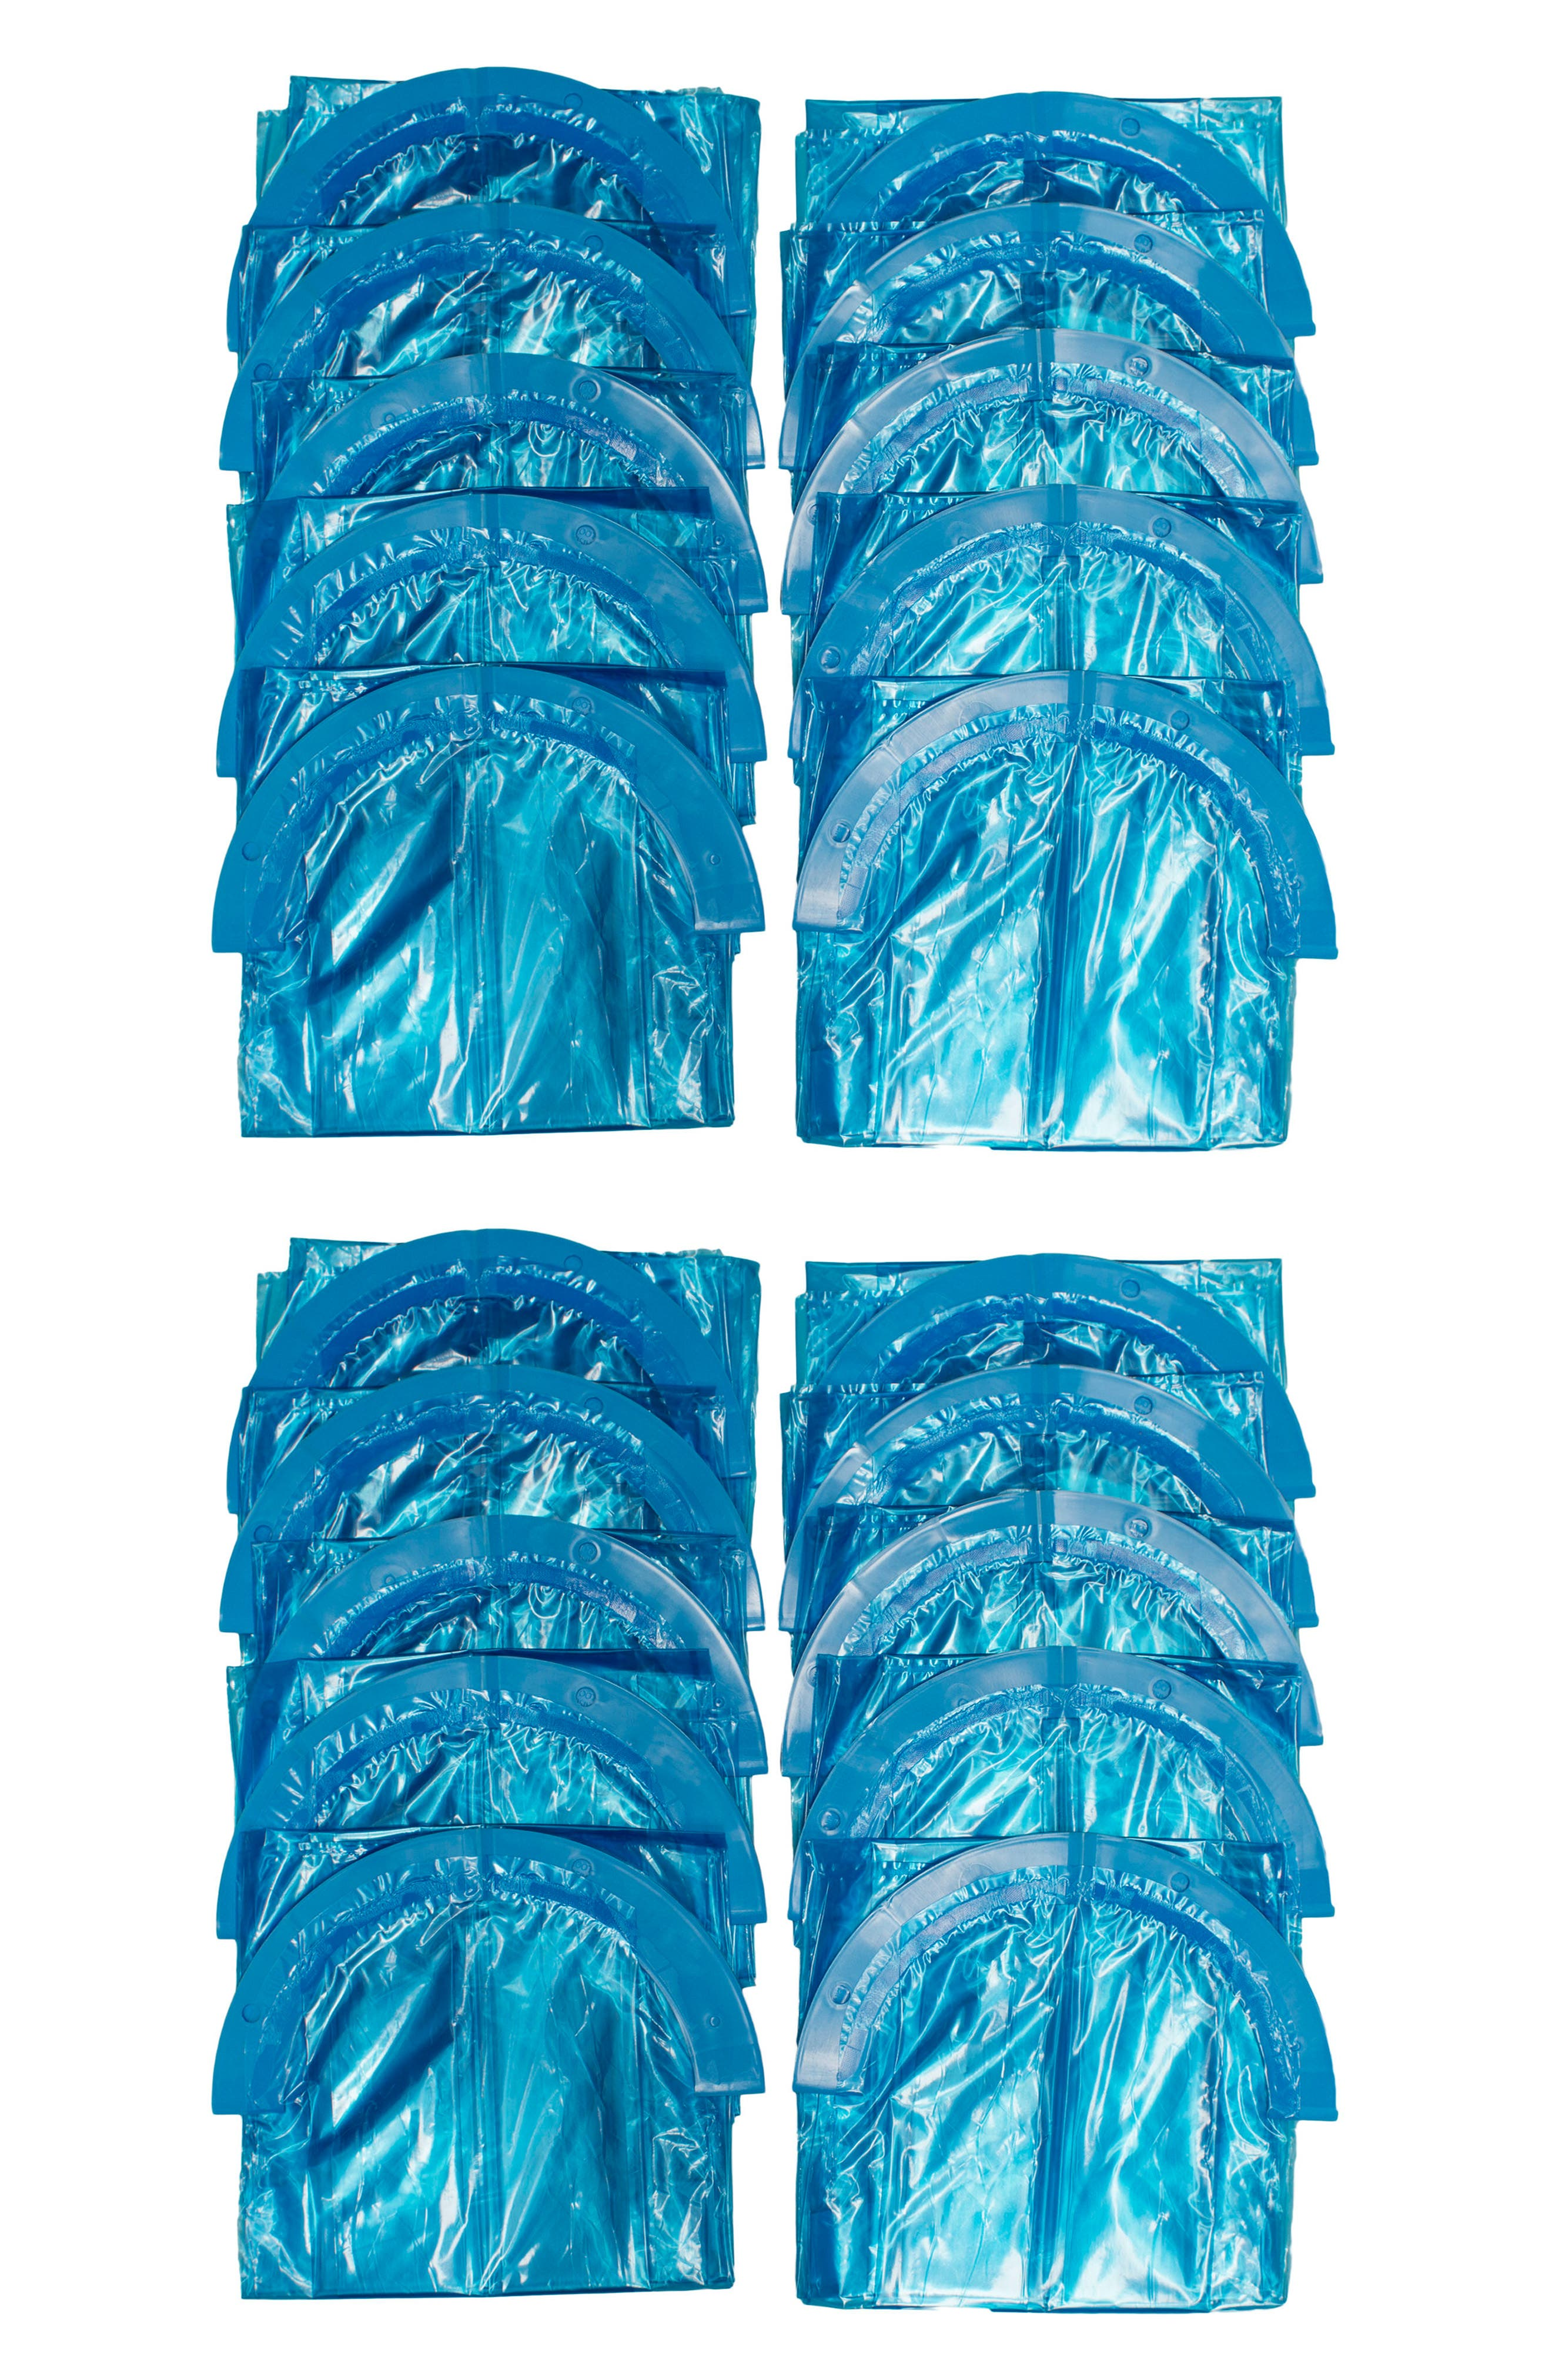 Alternate Image 1 Selected - Prince Lionheart Twist'r Diaper Disposal System Set of 20 Refill Bags